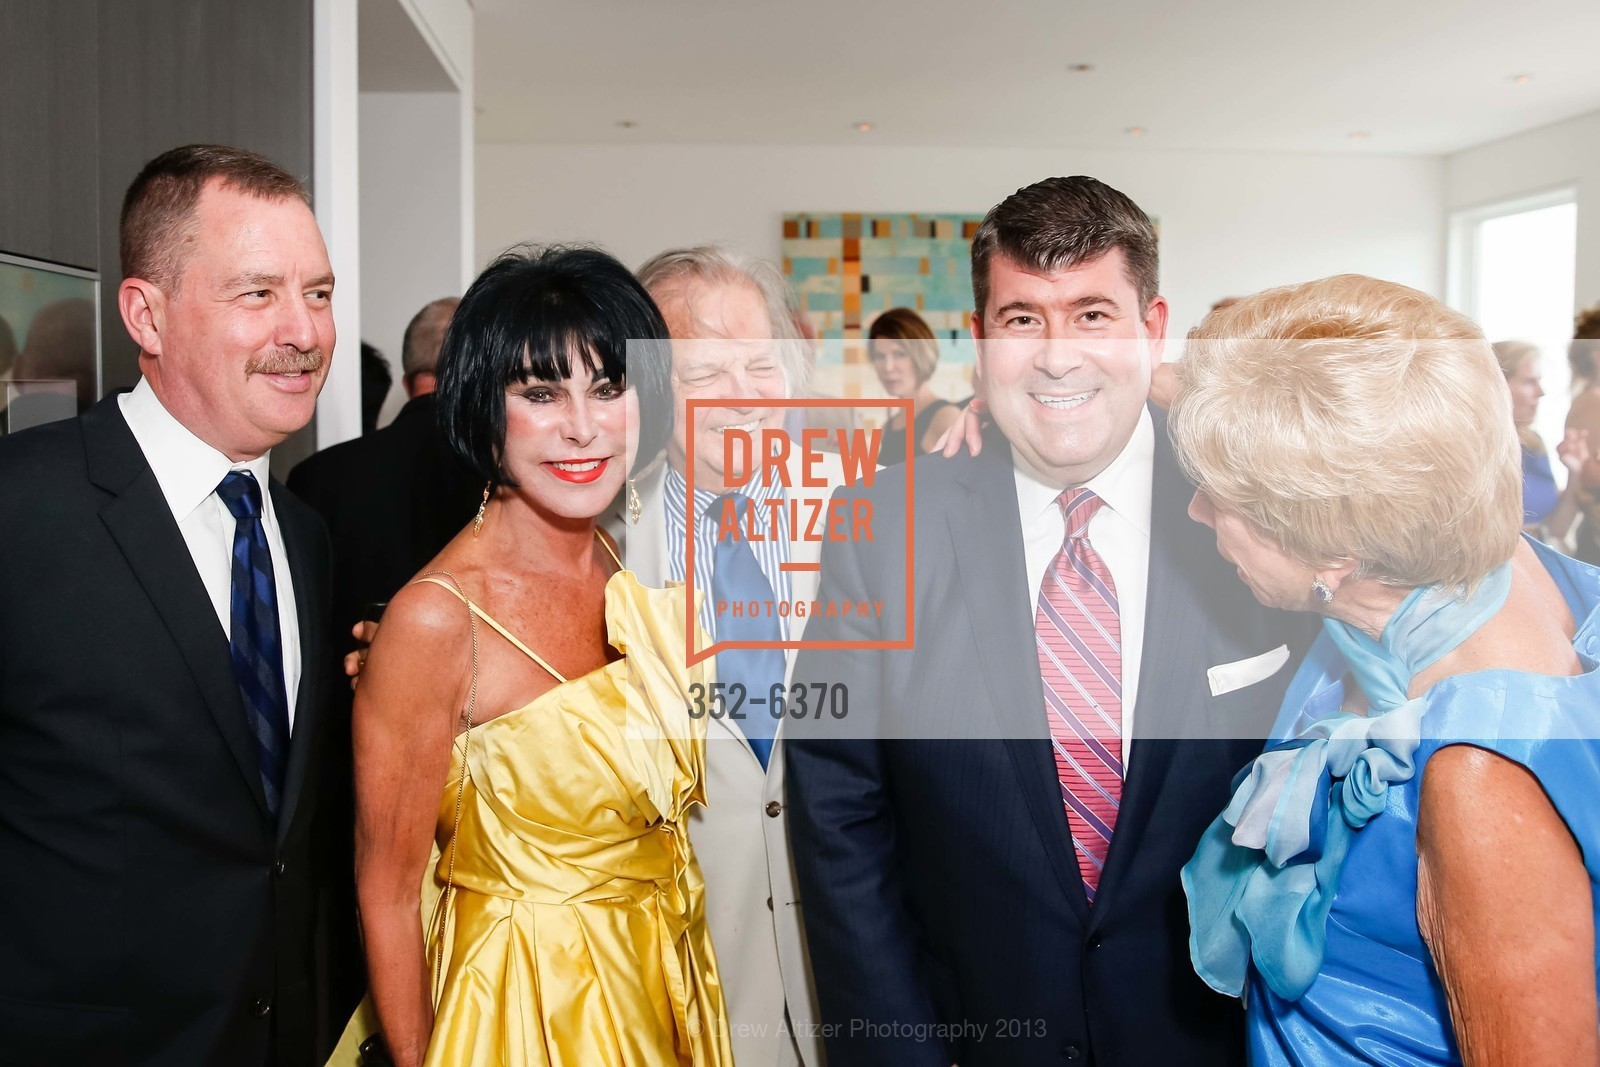 Mike Genoshe, Marilyn Cabak, Michael Cabak, Alan Morrell, Maria Pitcairn, OPERA GALA Patrons Party, US, August 28th, 2013,Drew Altizer, Drew Altizer Photography, full-service agency, private events, San Francisco photographer, photographer california